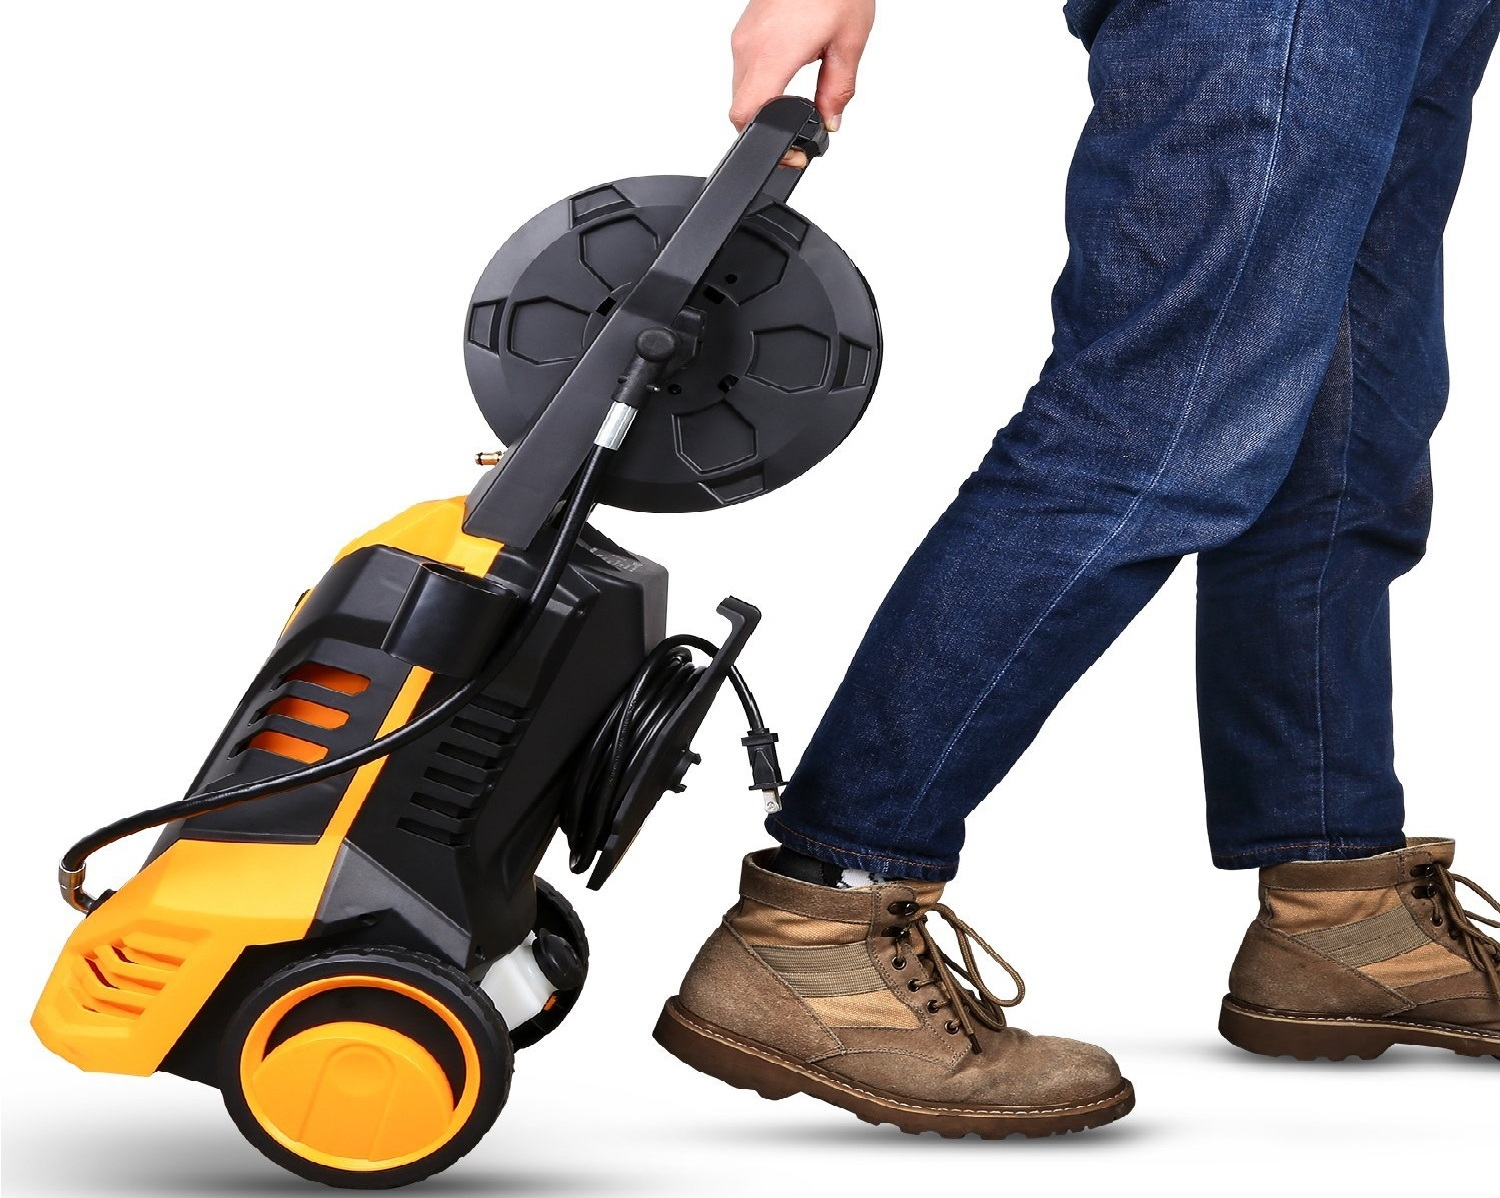 DEKO 2030PSI Electric Pressure Washer Review